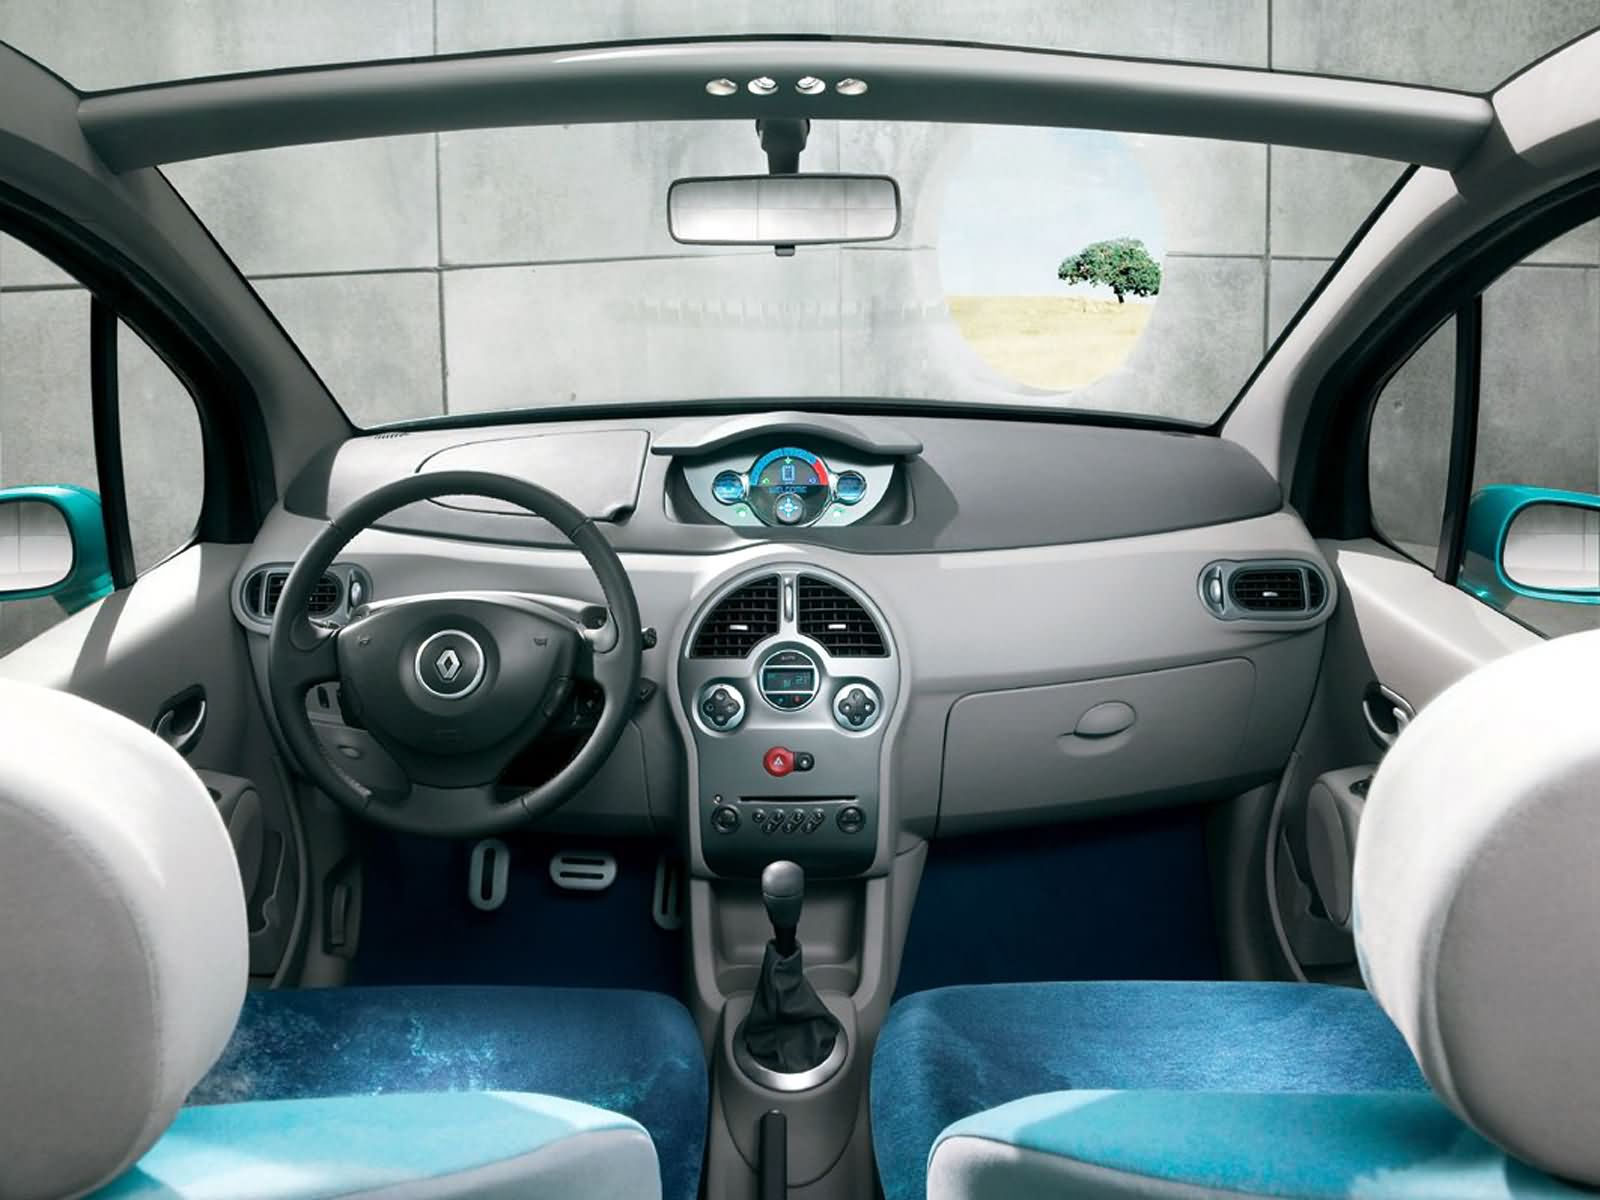 Renault modus picture 9900 renault photo gallery for Interieur 78